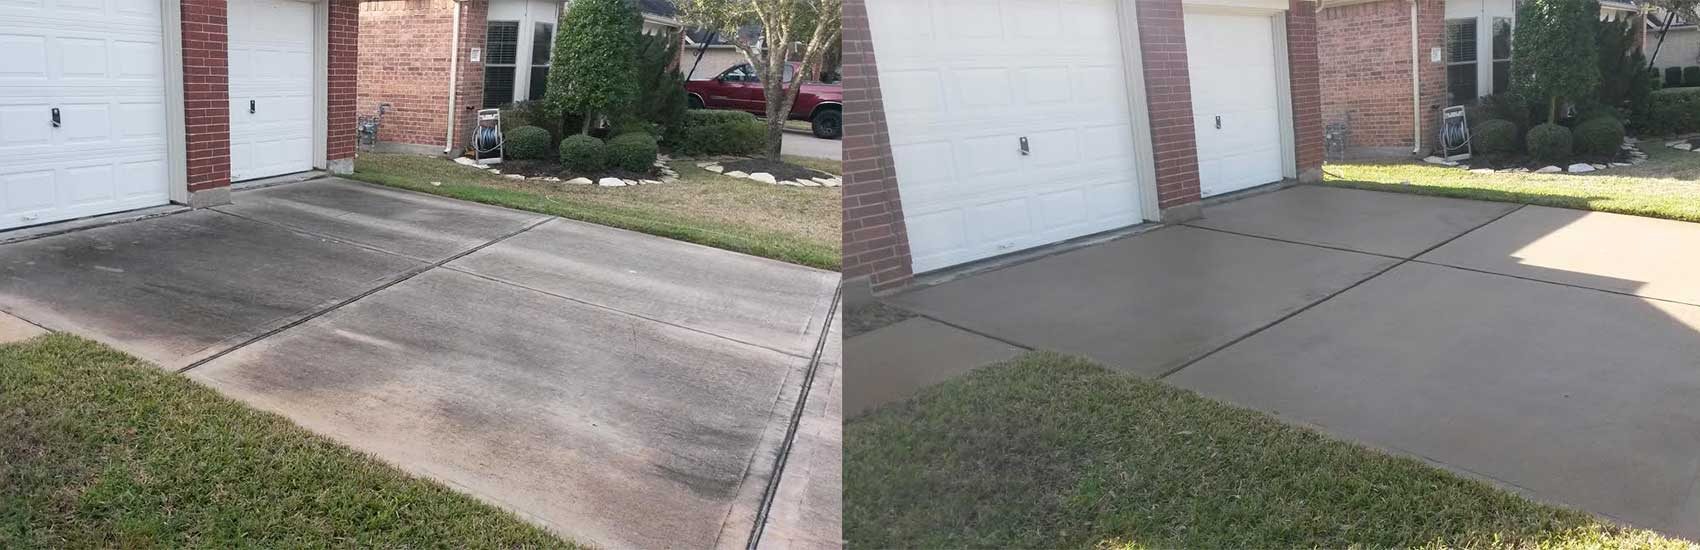 Katy-Driveway-Cleaning-Before